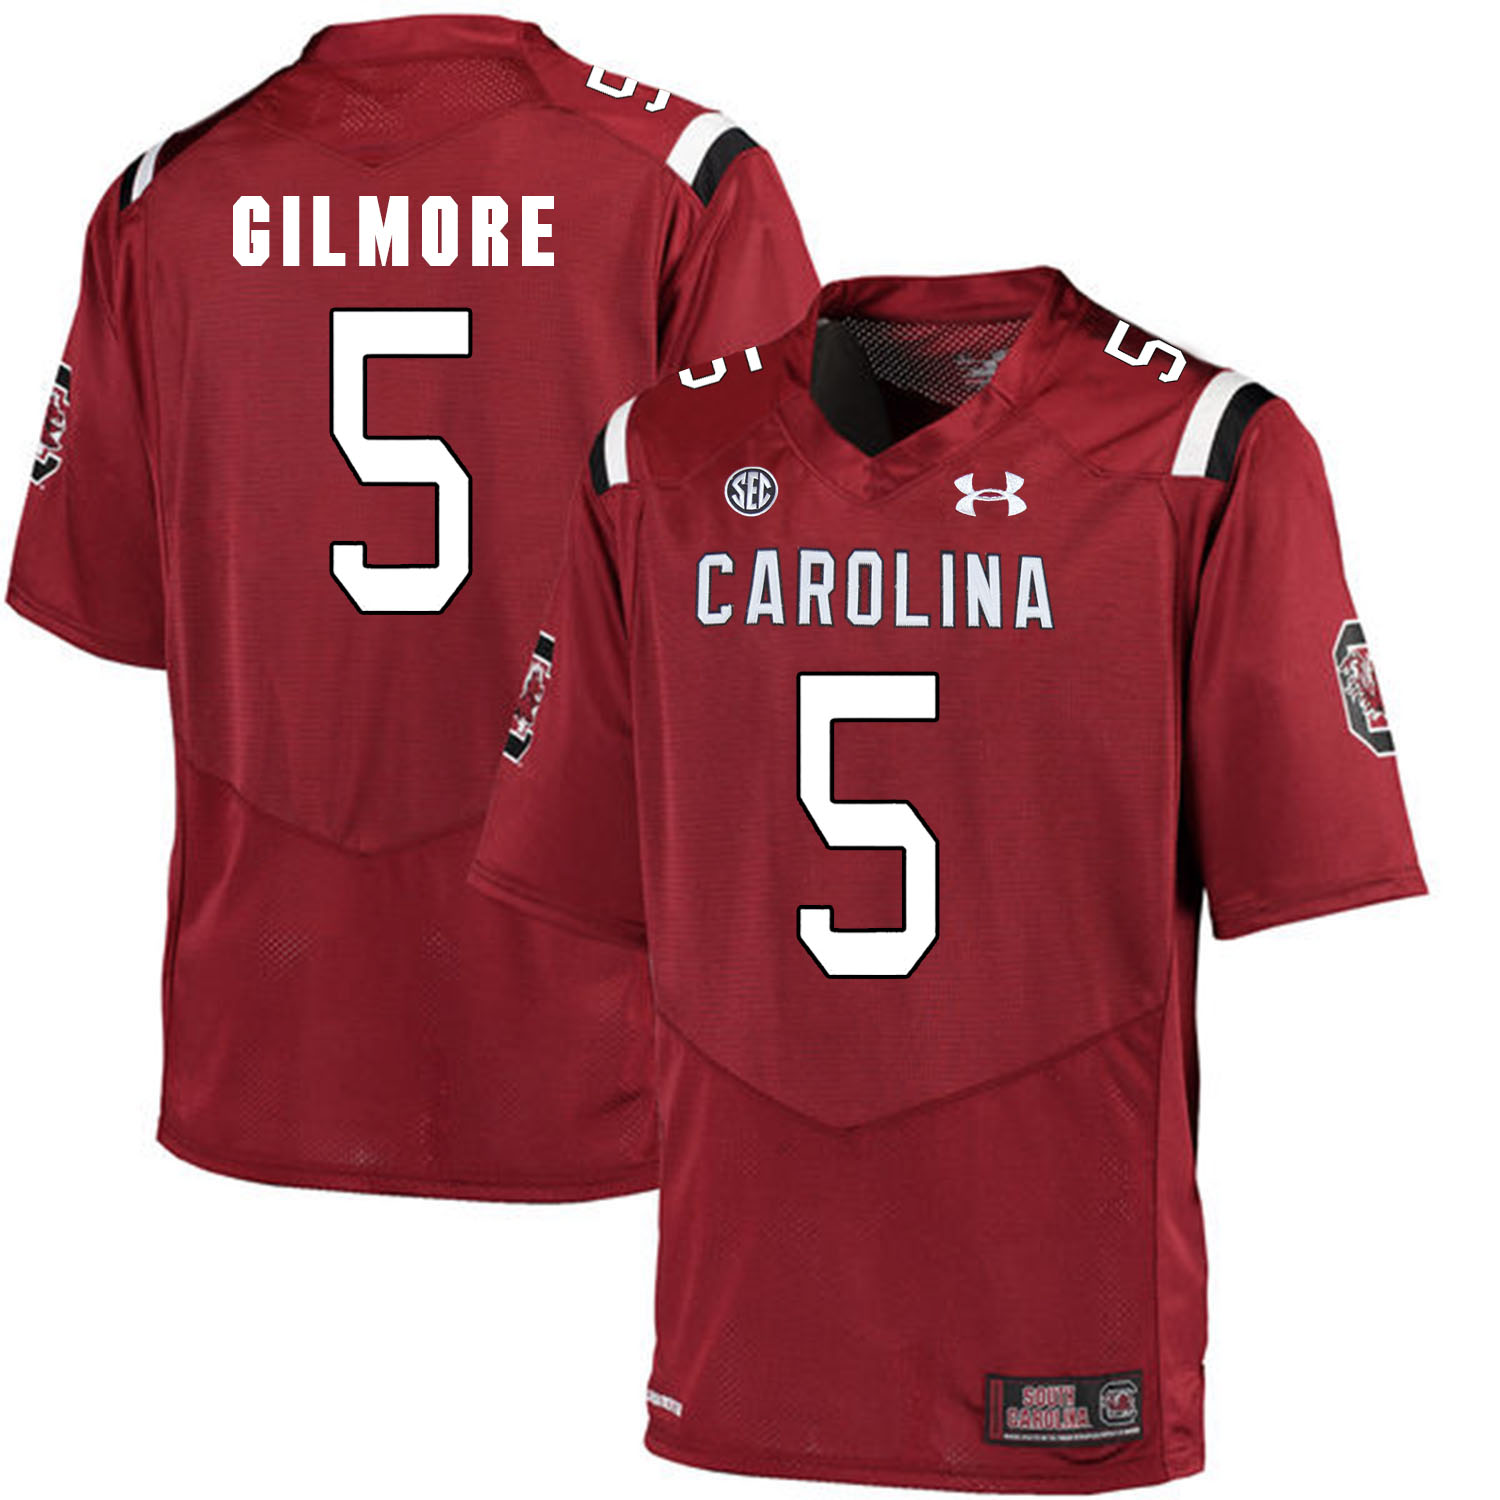 South Carolina Gamecocks 5 Stephon Gilmore Red College Football Jersey